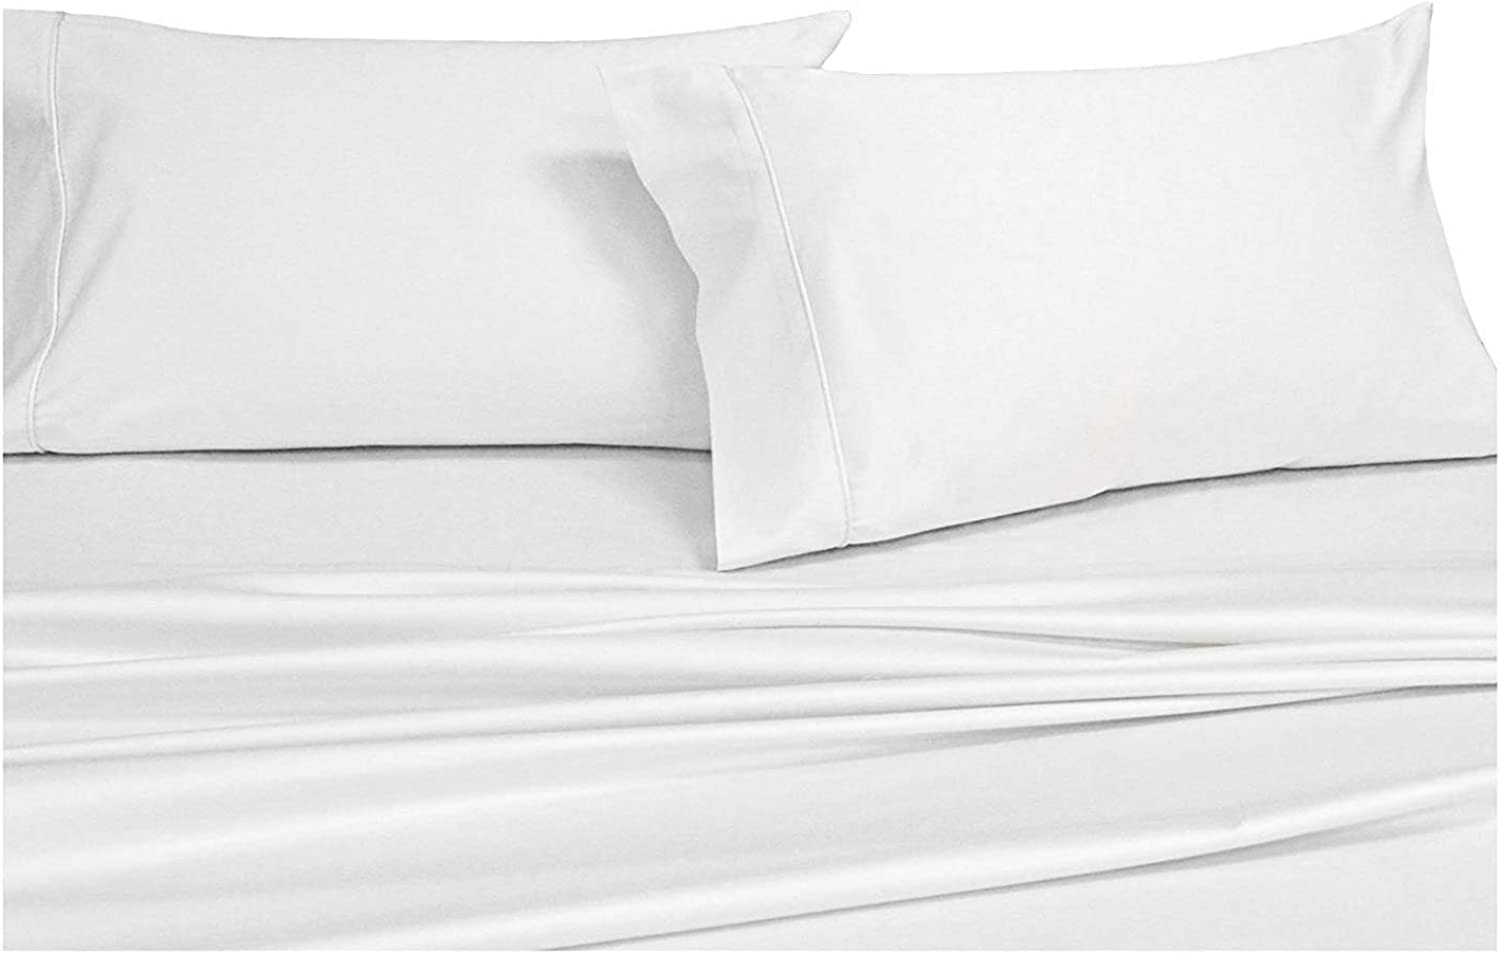 Authentic Heavy Quality 4 Piece Hotel Luxury Soft Egyptian Cotton 1500 Thread Count Series Premium Bed Sheets Set, Fits 14-18  Inch Deep Pockets (King, White)